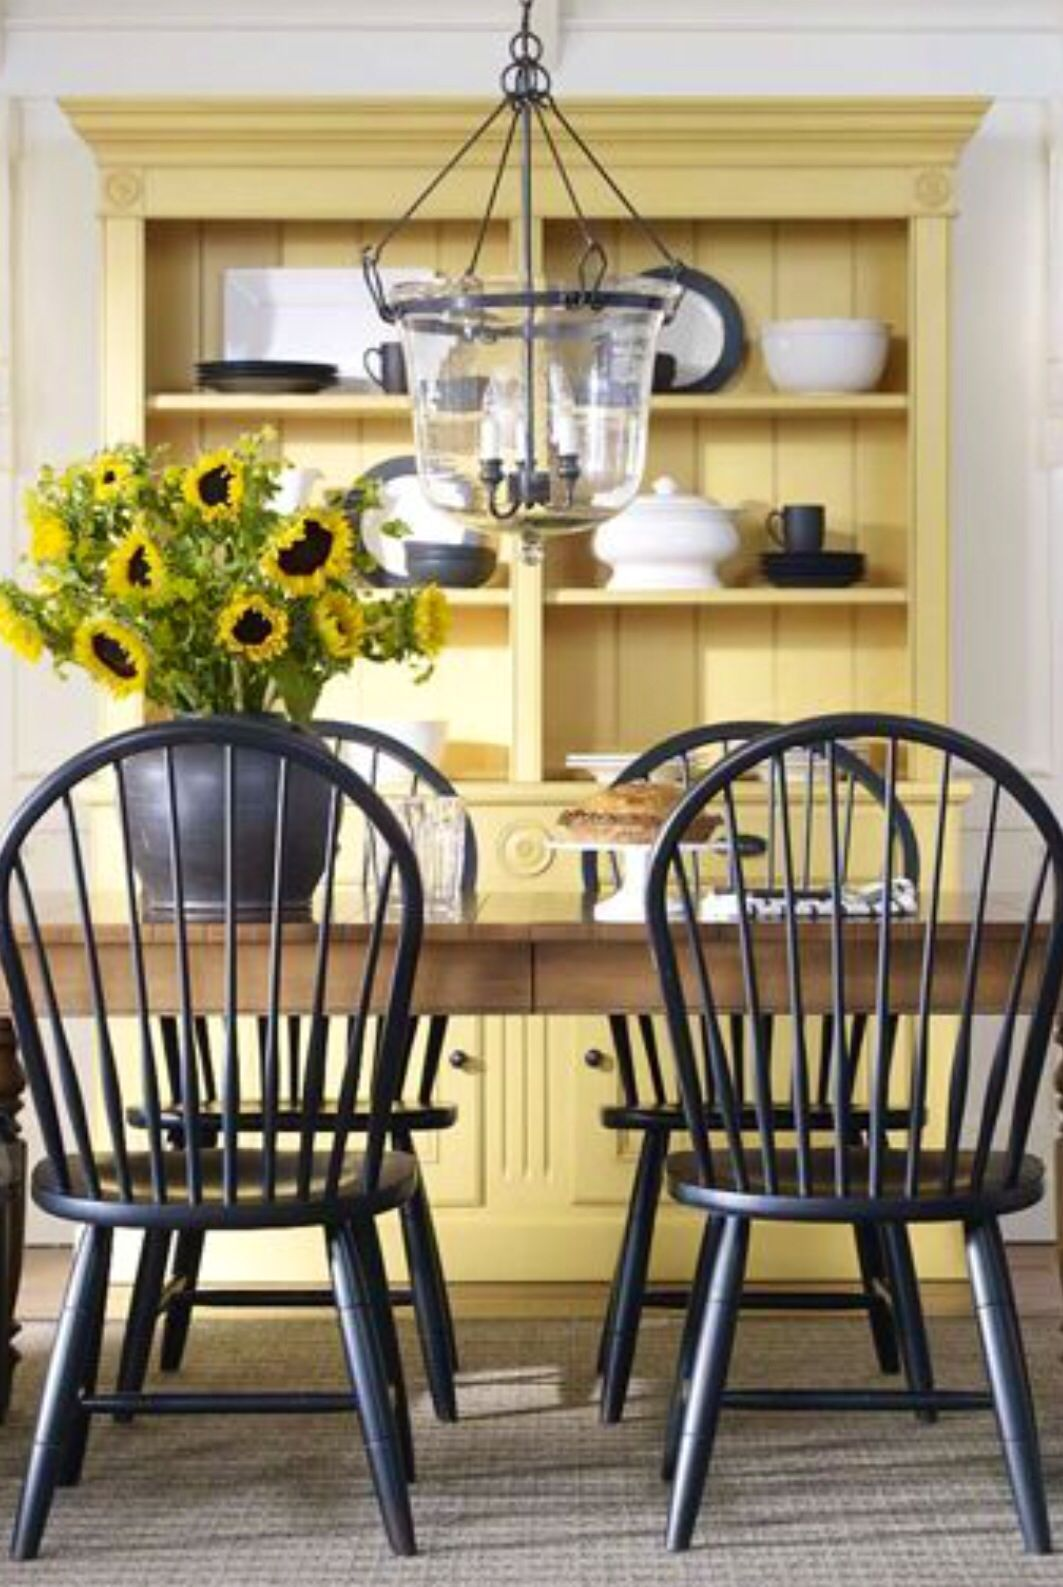 Ethan Allen furniture. … Rustic farmhouse table